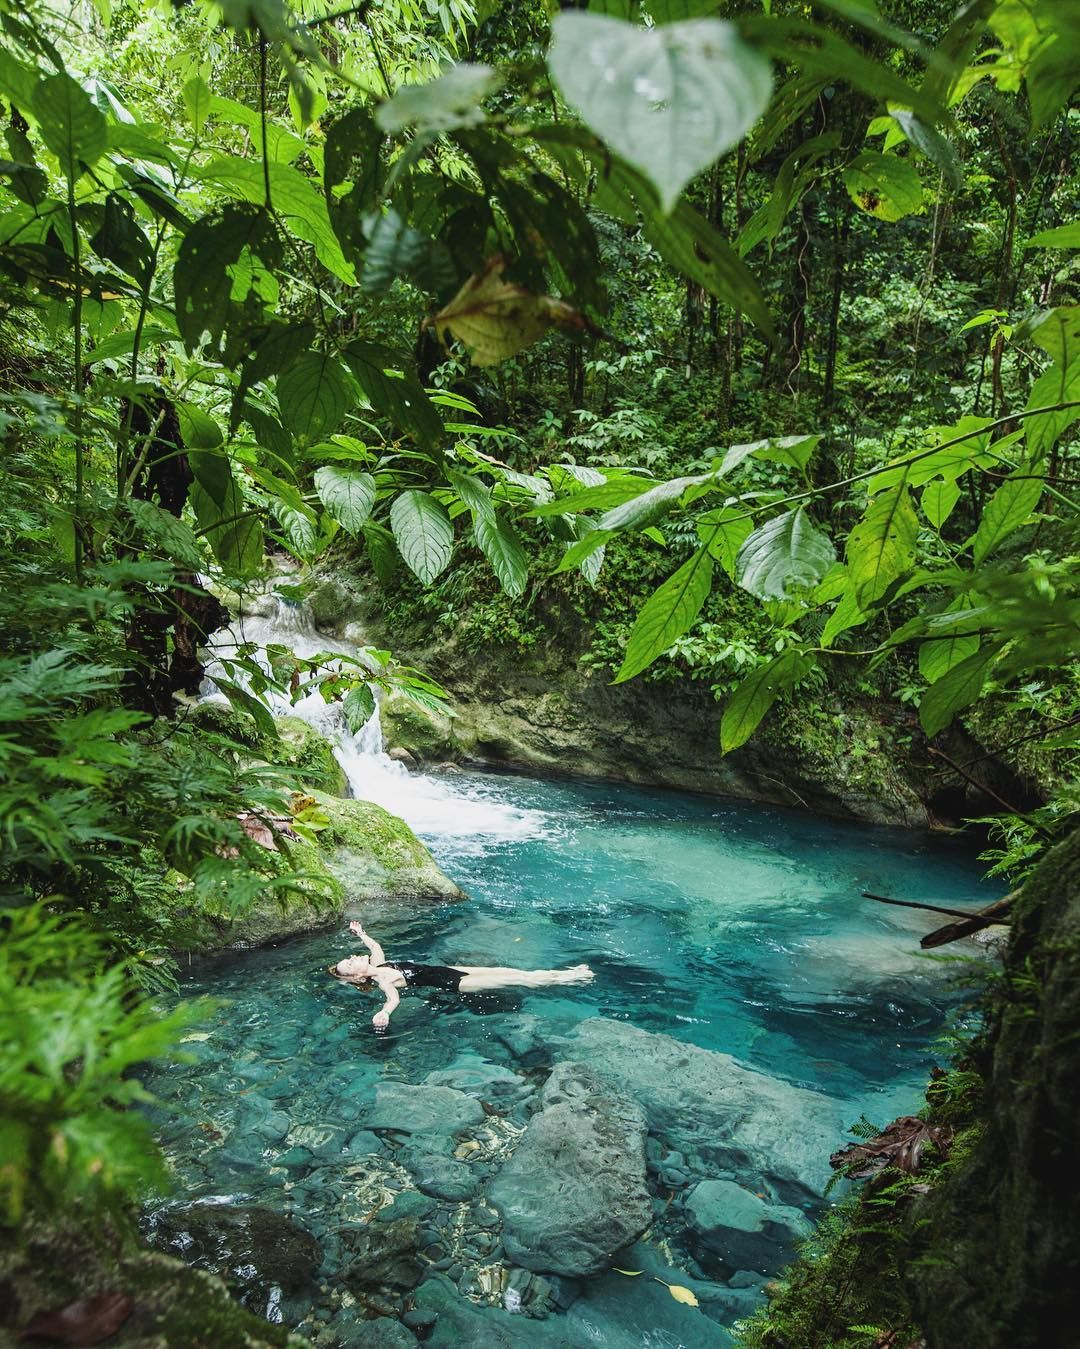 Wishing you a relaxing Good Friday from Port Antonio Jamaica where the Drivers River forms perfect turquoise swimming holes under the emerald canopies of the John Crow Mountains. #surroundmewithwater   by Islands' photographer @zachstovallphoto on assignment in Portland Parish Jamaica.  by islandsmagazine